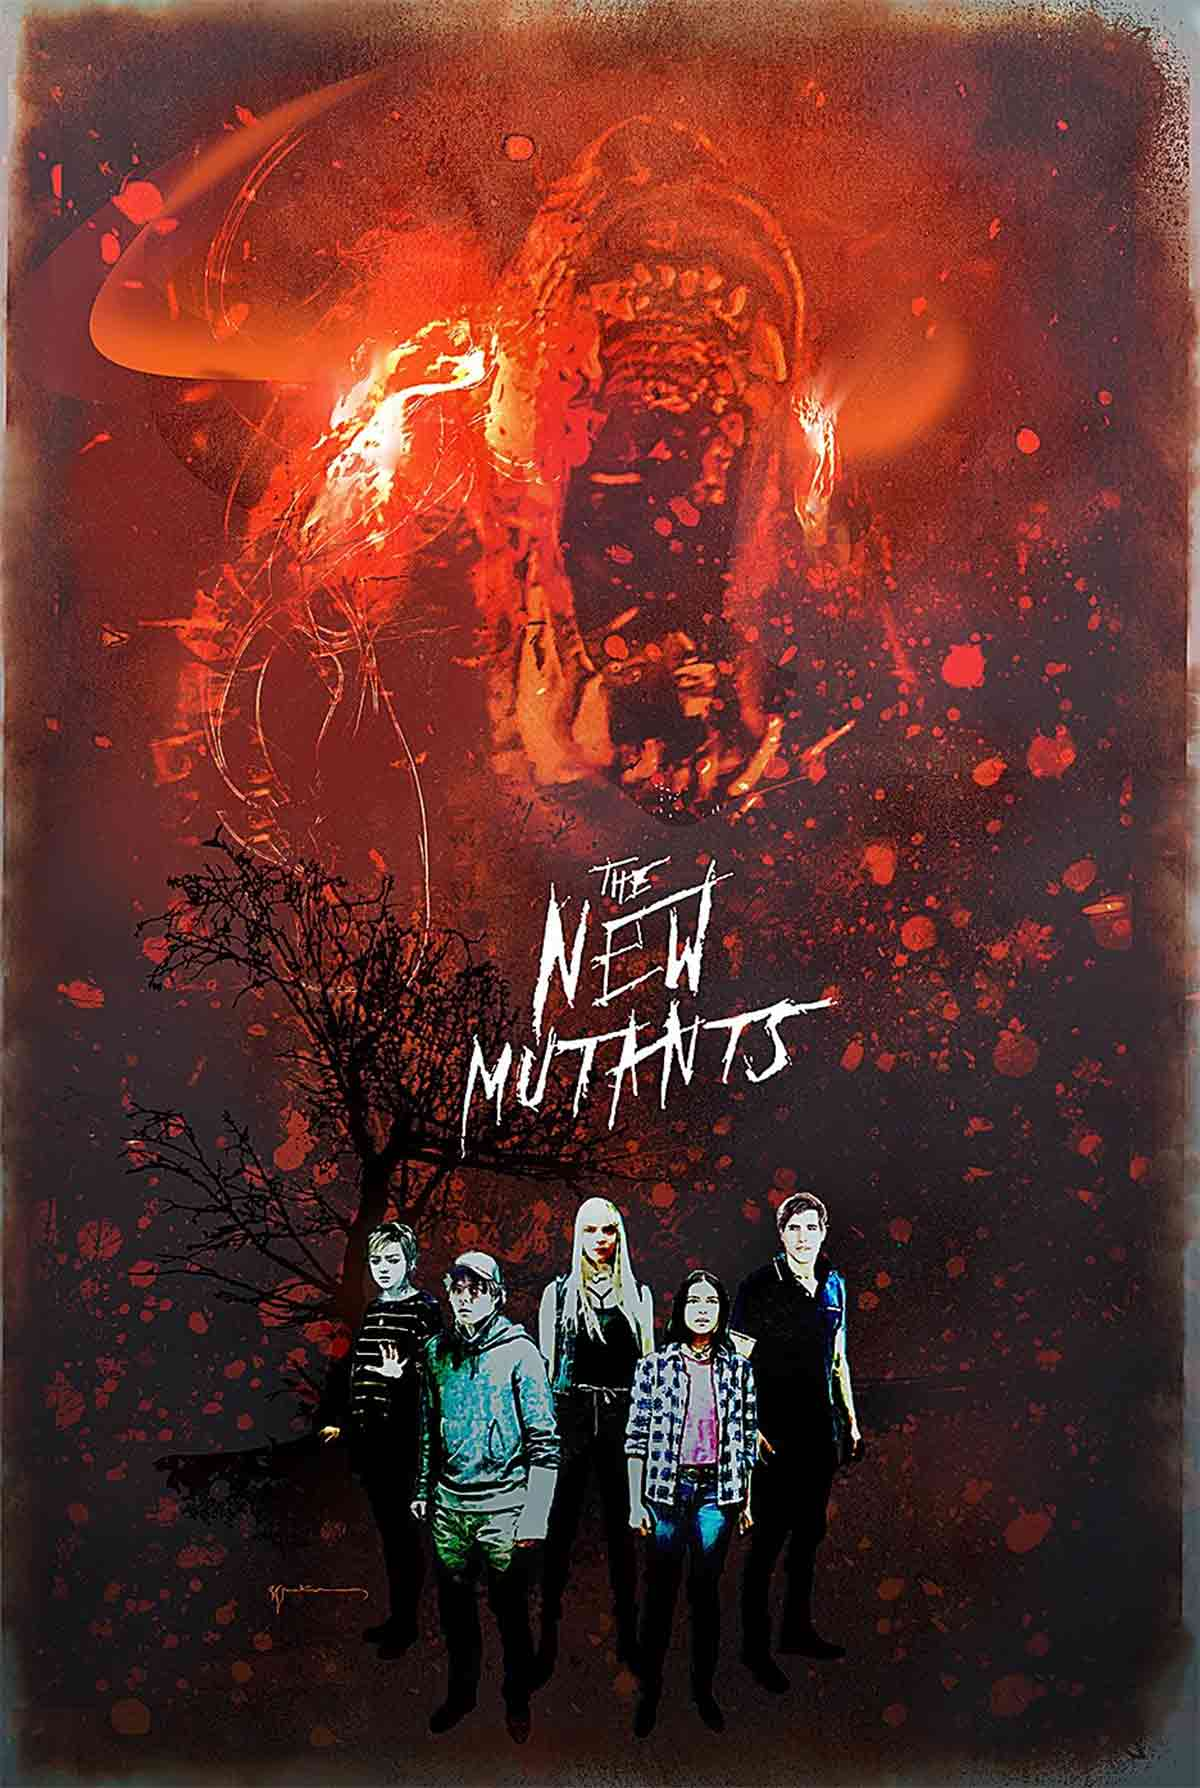 The New Mutants reveals their intense opening scene and new trailer